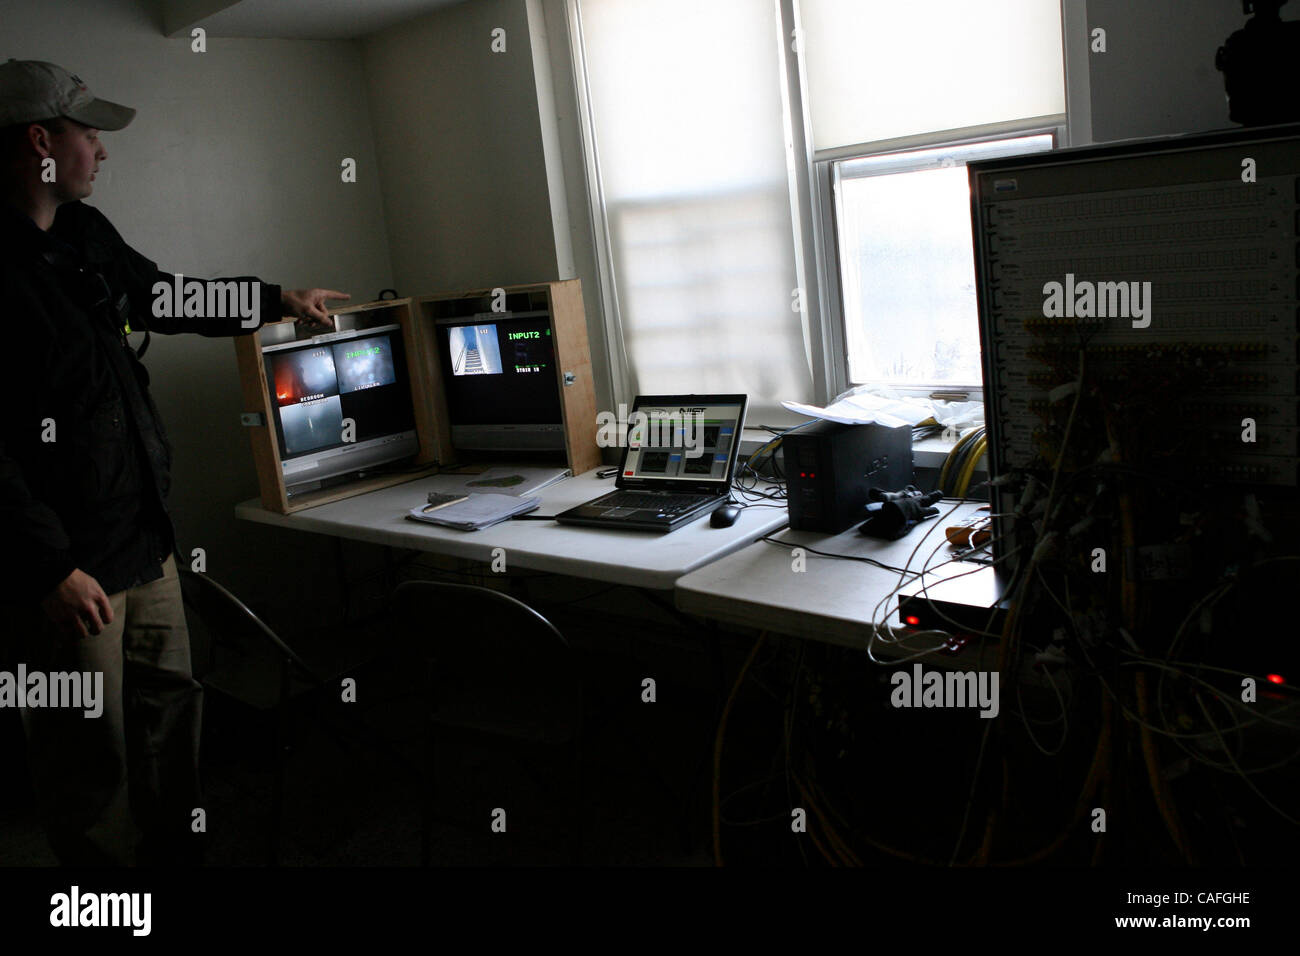 Stephen Kerber of NIST (National Institute of Standards and Technology) checking the computers during the fire training - Stock Image